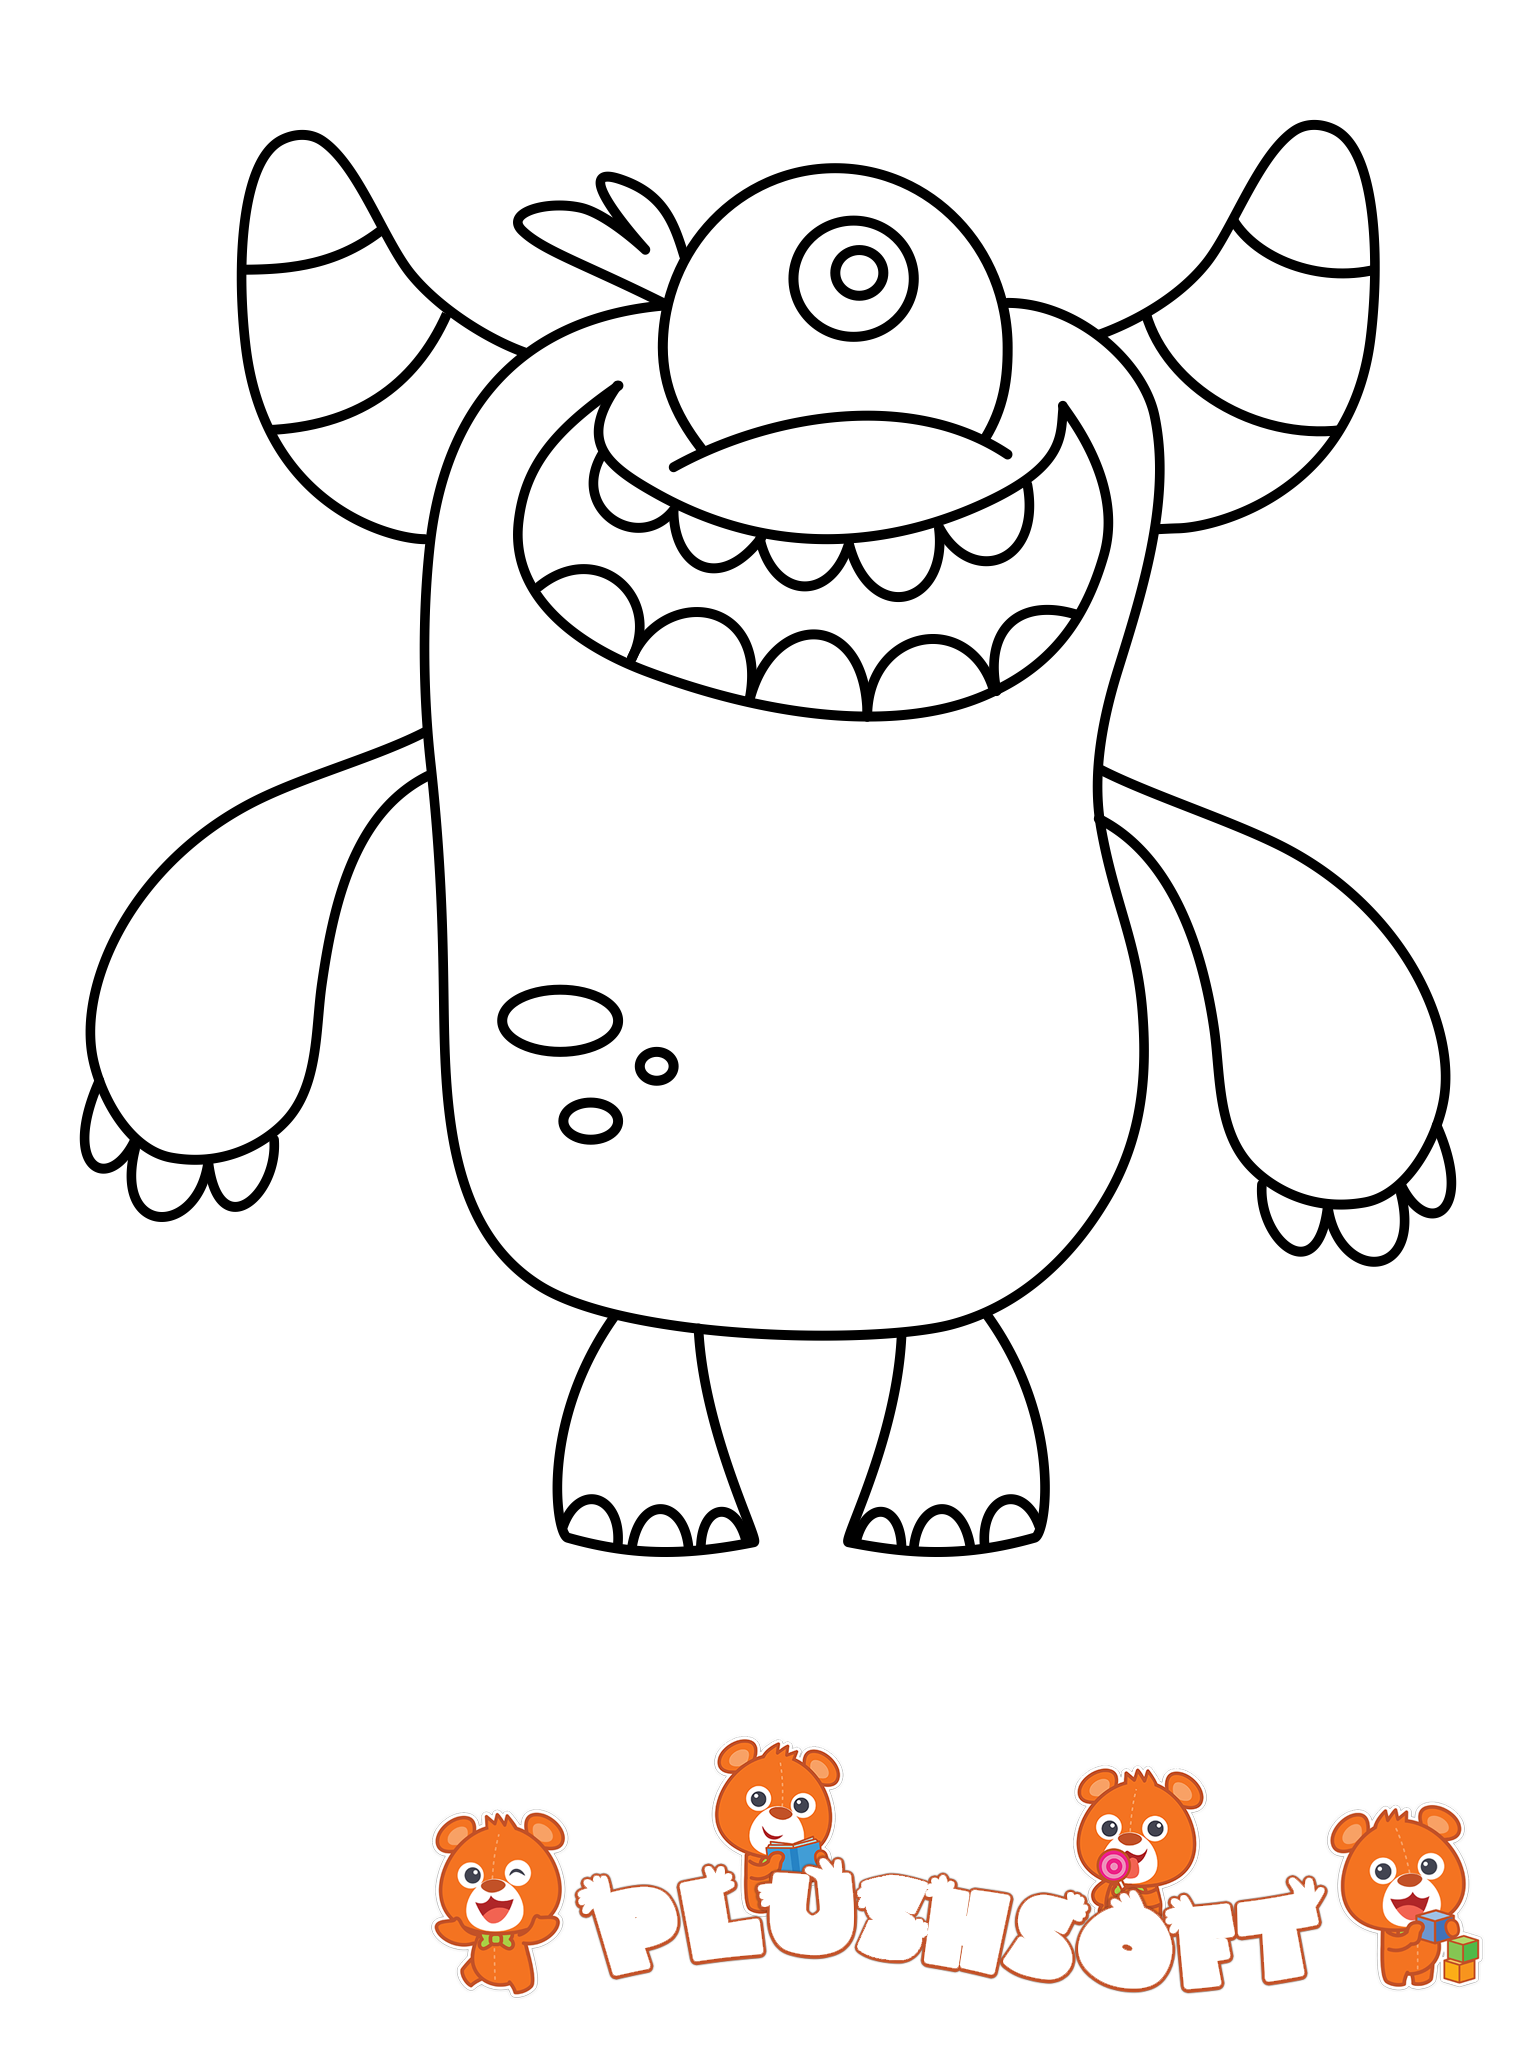 FREE Printable Coloring Page - a cute Monster for your ...